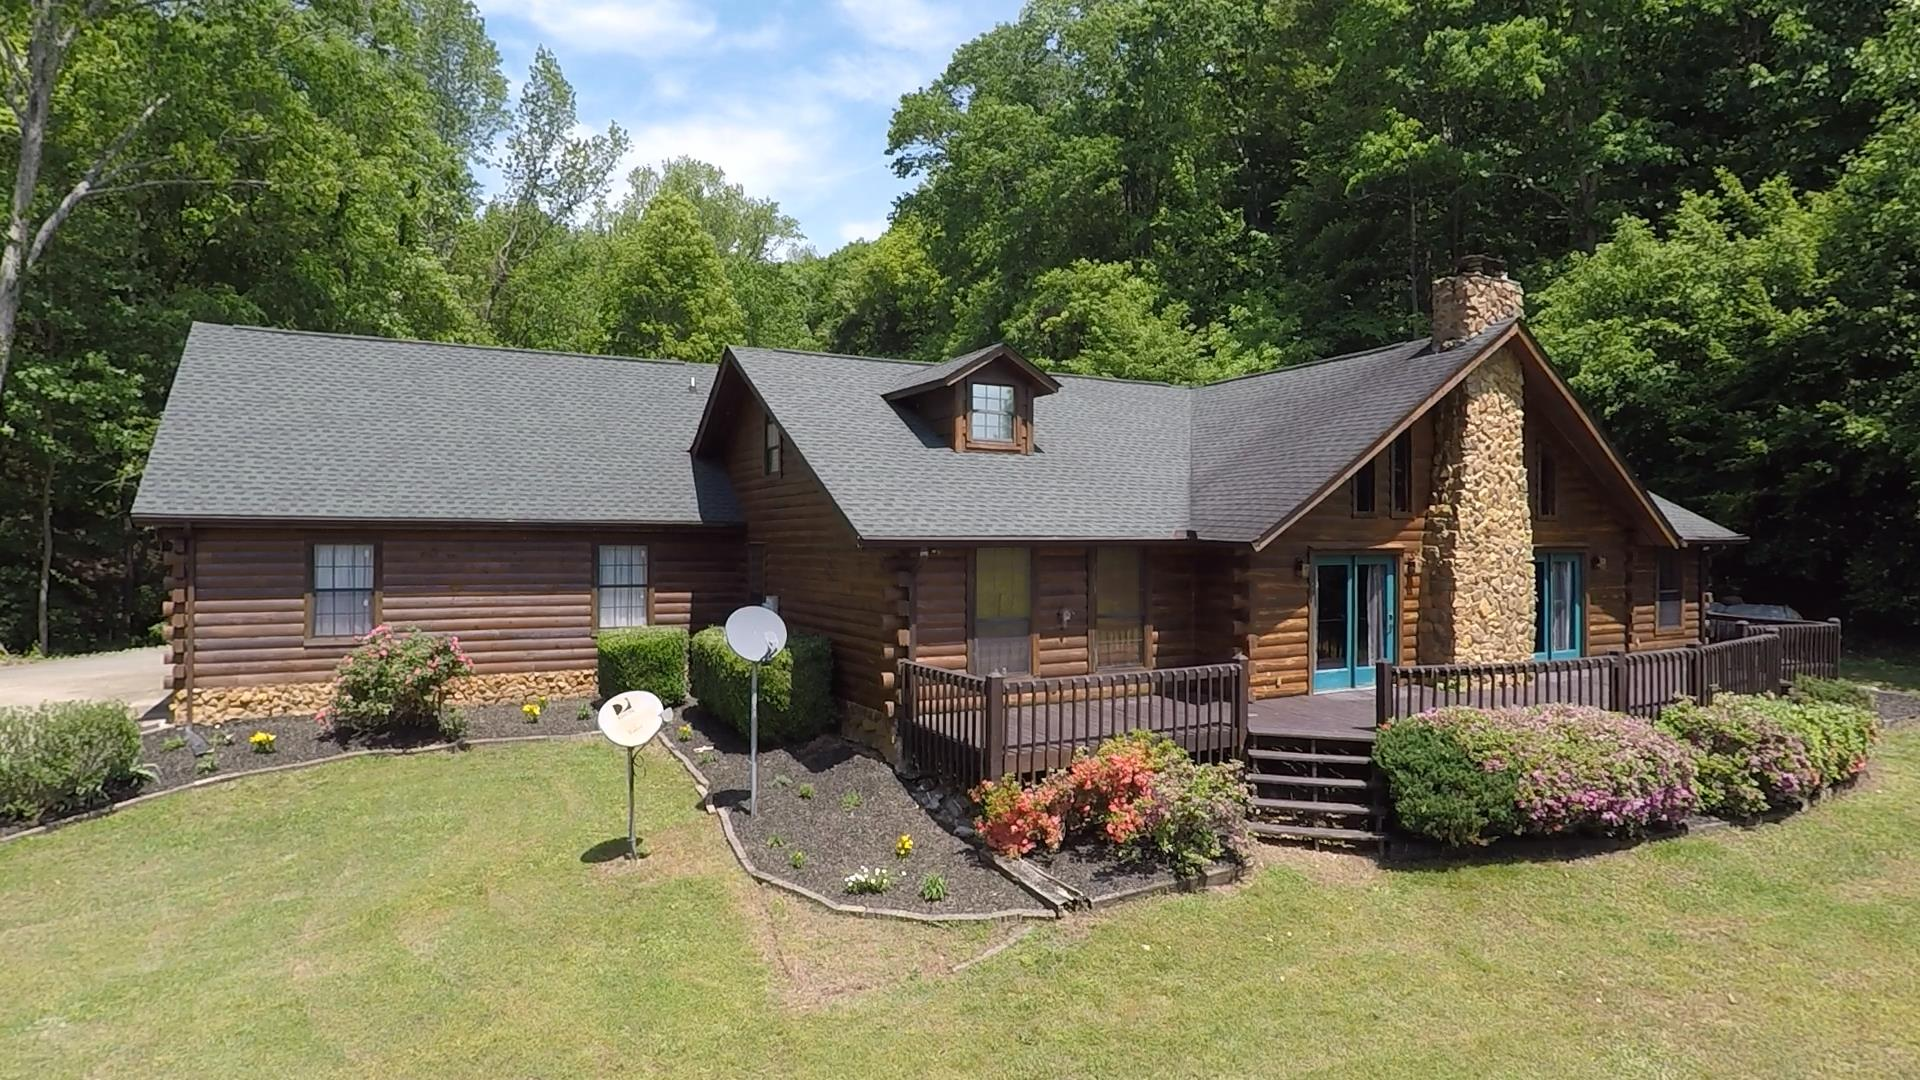 6 bdrm, 3 full bath home in a private setting with abundant wildlife! 12.80 acres (2+ pasture, other